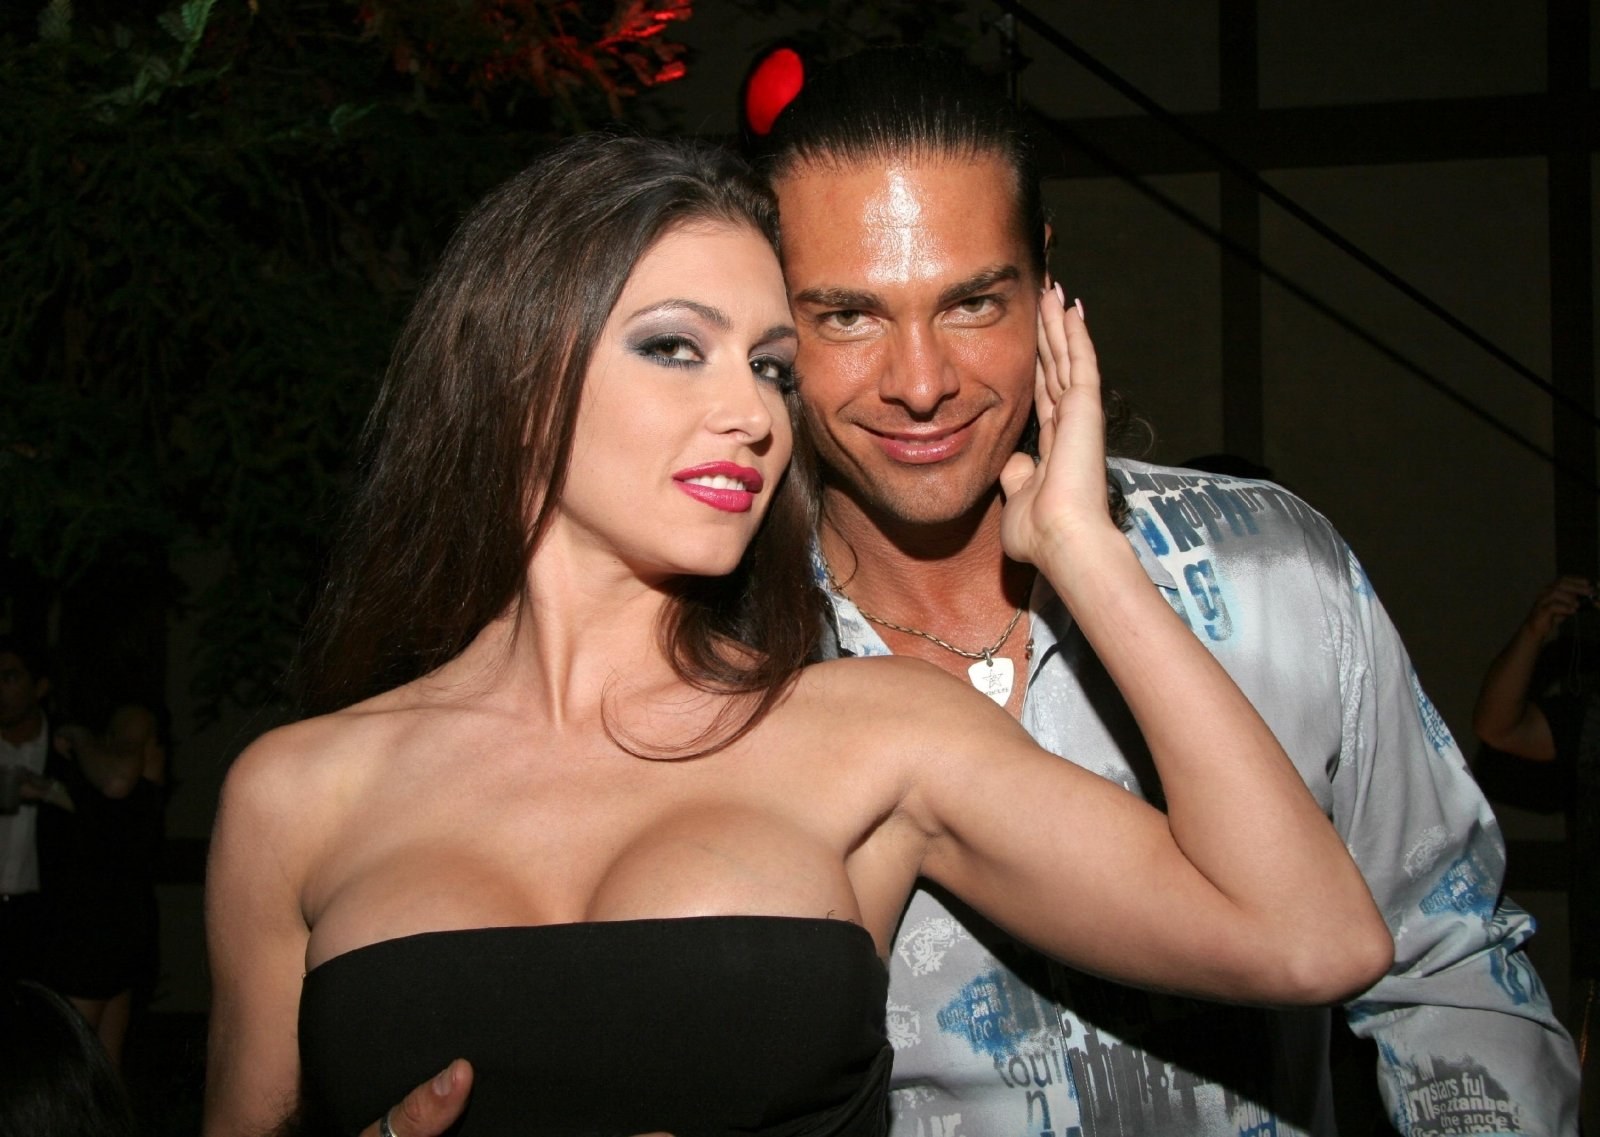 Jessica jaymes pictures